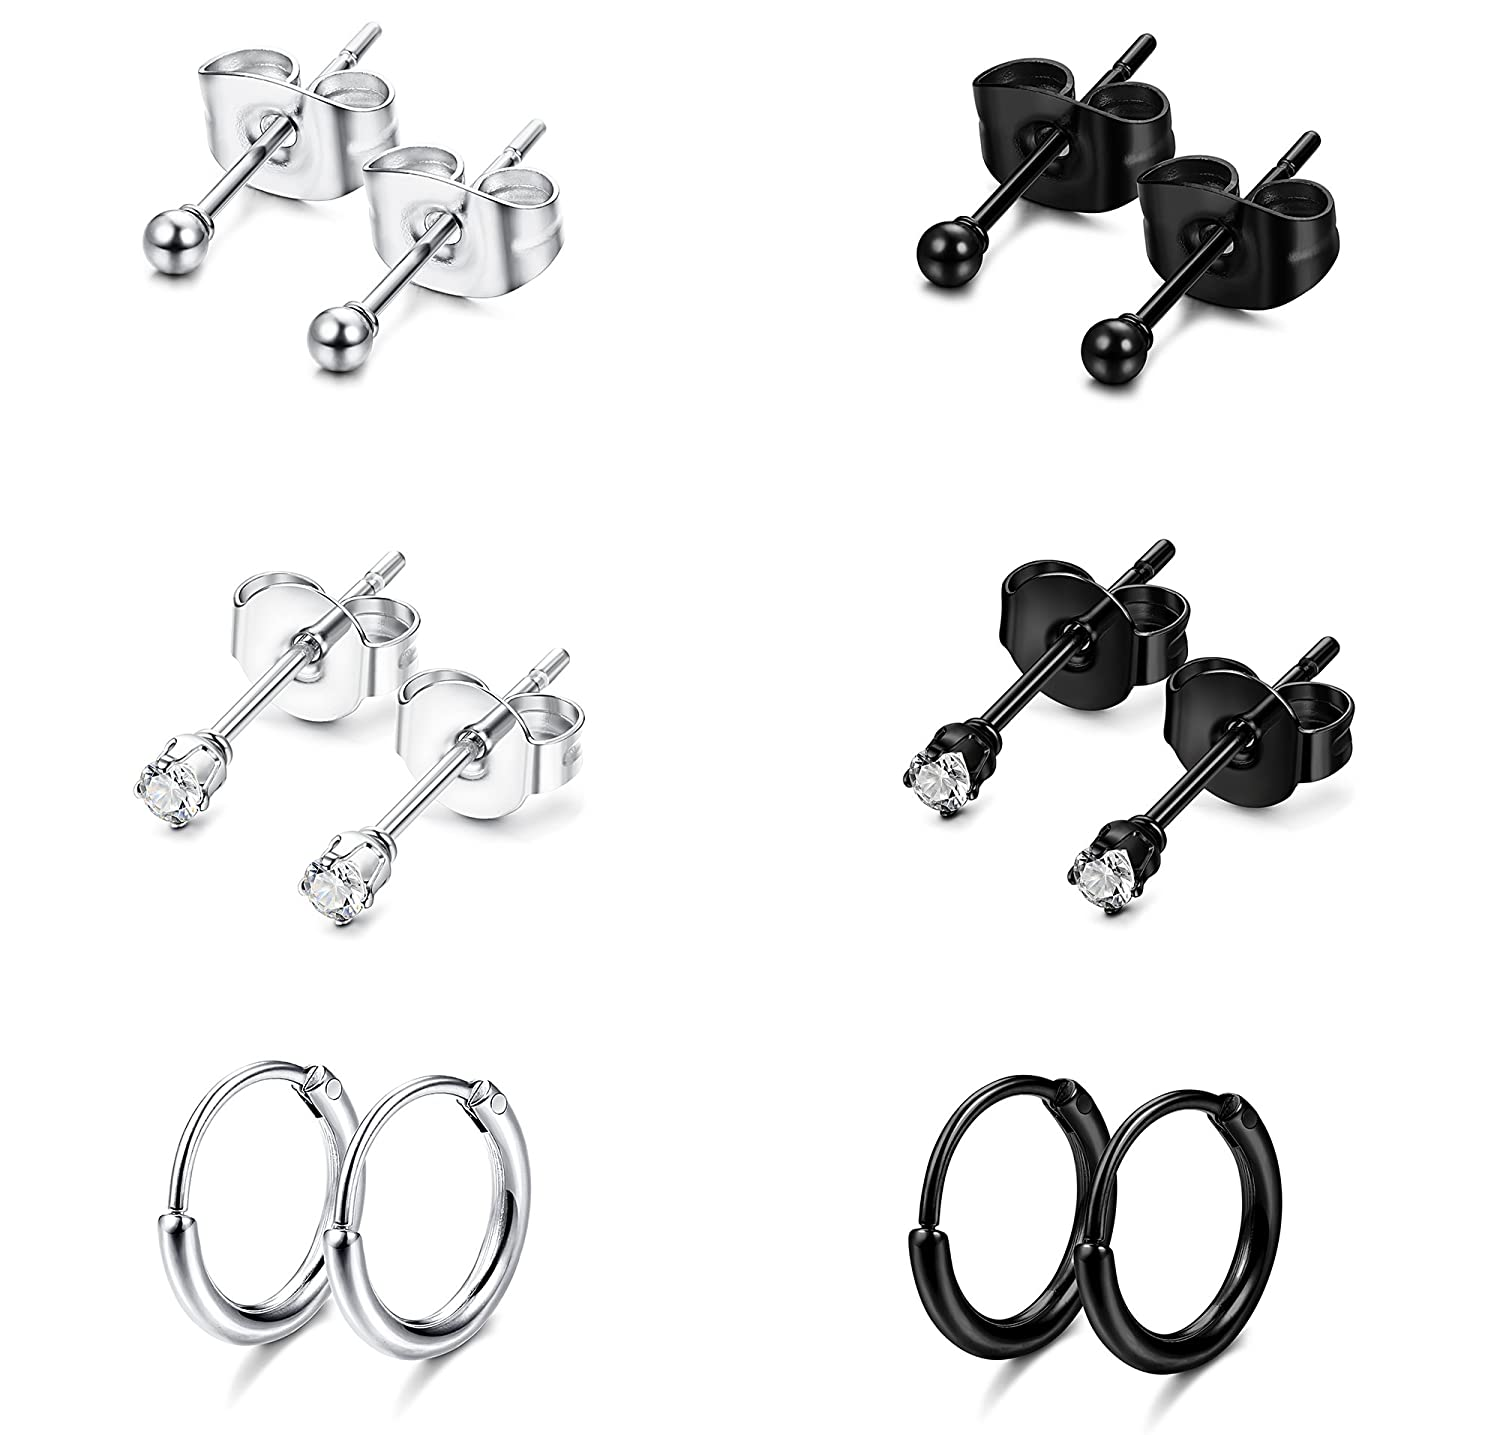 Jstyle Stainless Steel 2mm Tiny Stud Earrings for Women Mens Endless Hoops CZ Balls Cartilage Earrings Set 20G WE17177-SB